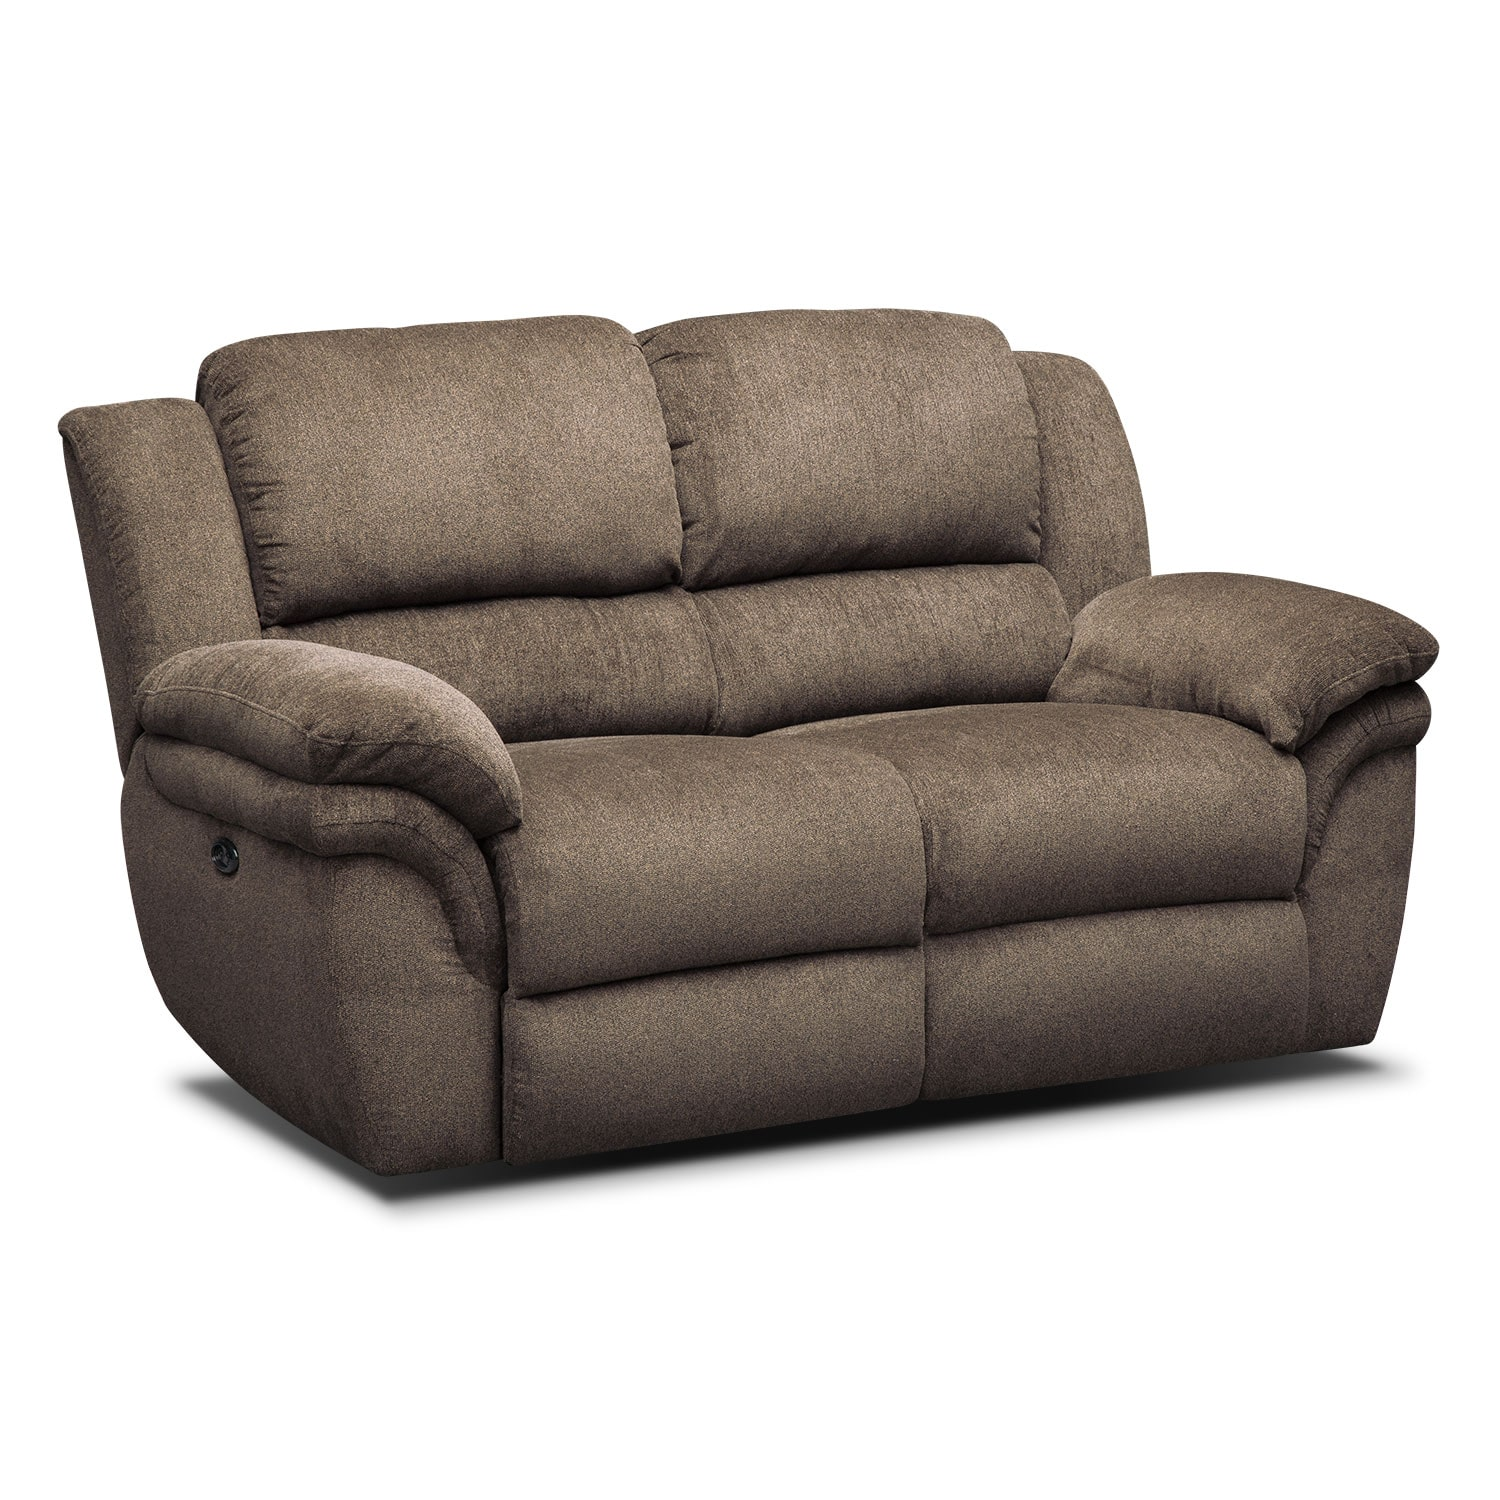 Power Reclining Sofa : Aldo power reclining sofa loveseat and recliner set